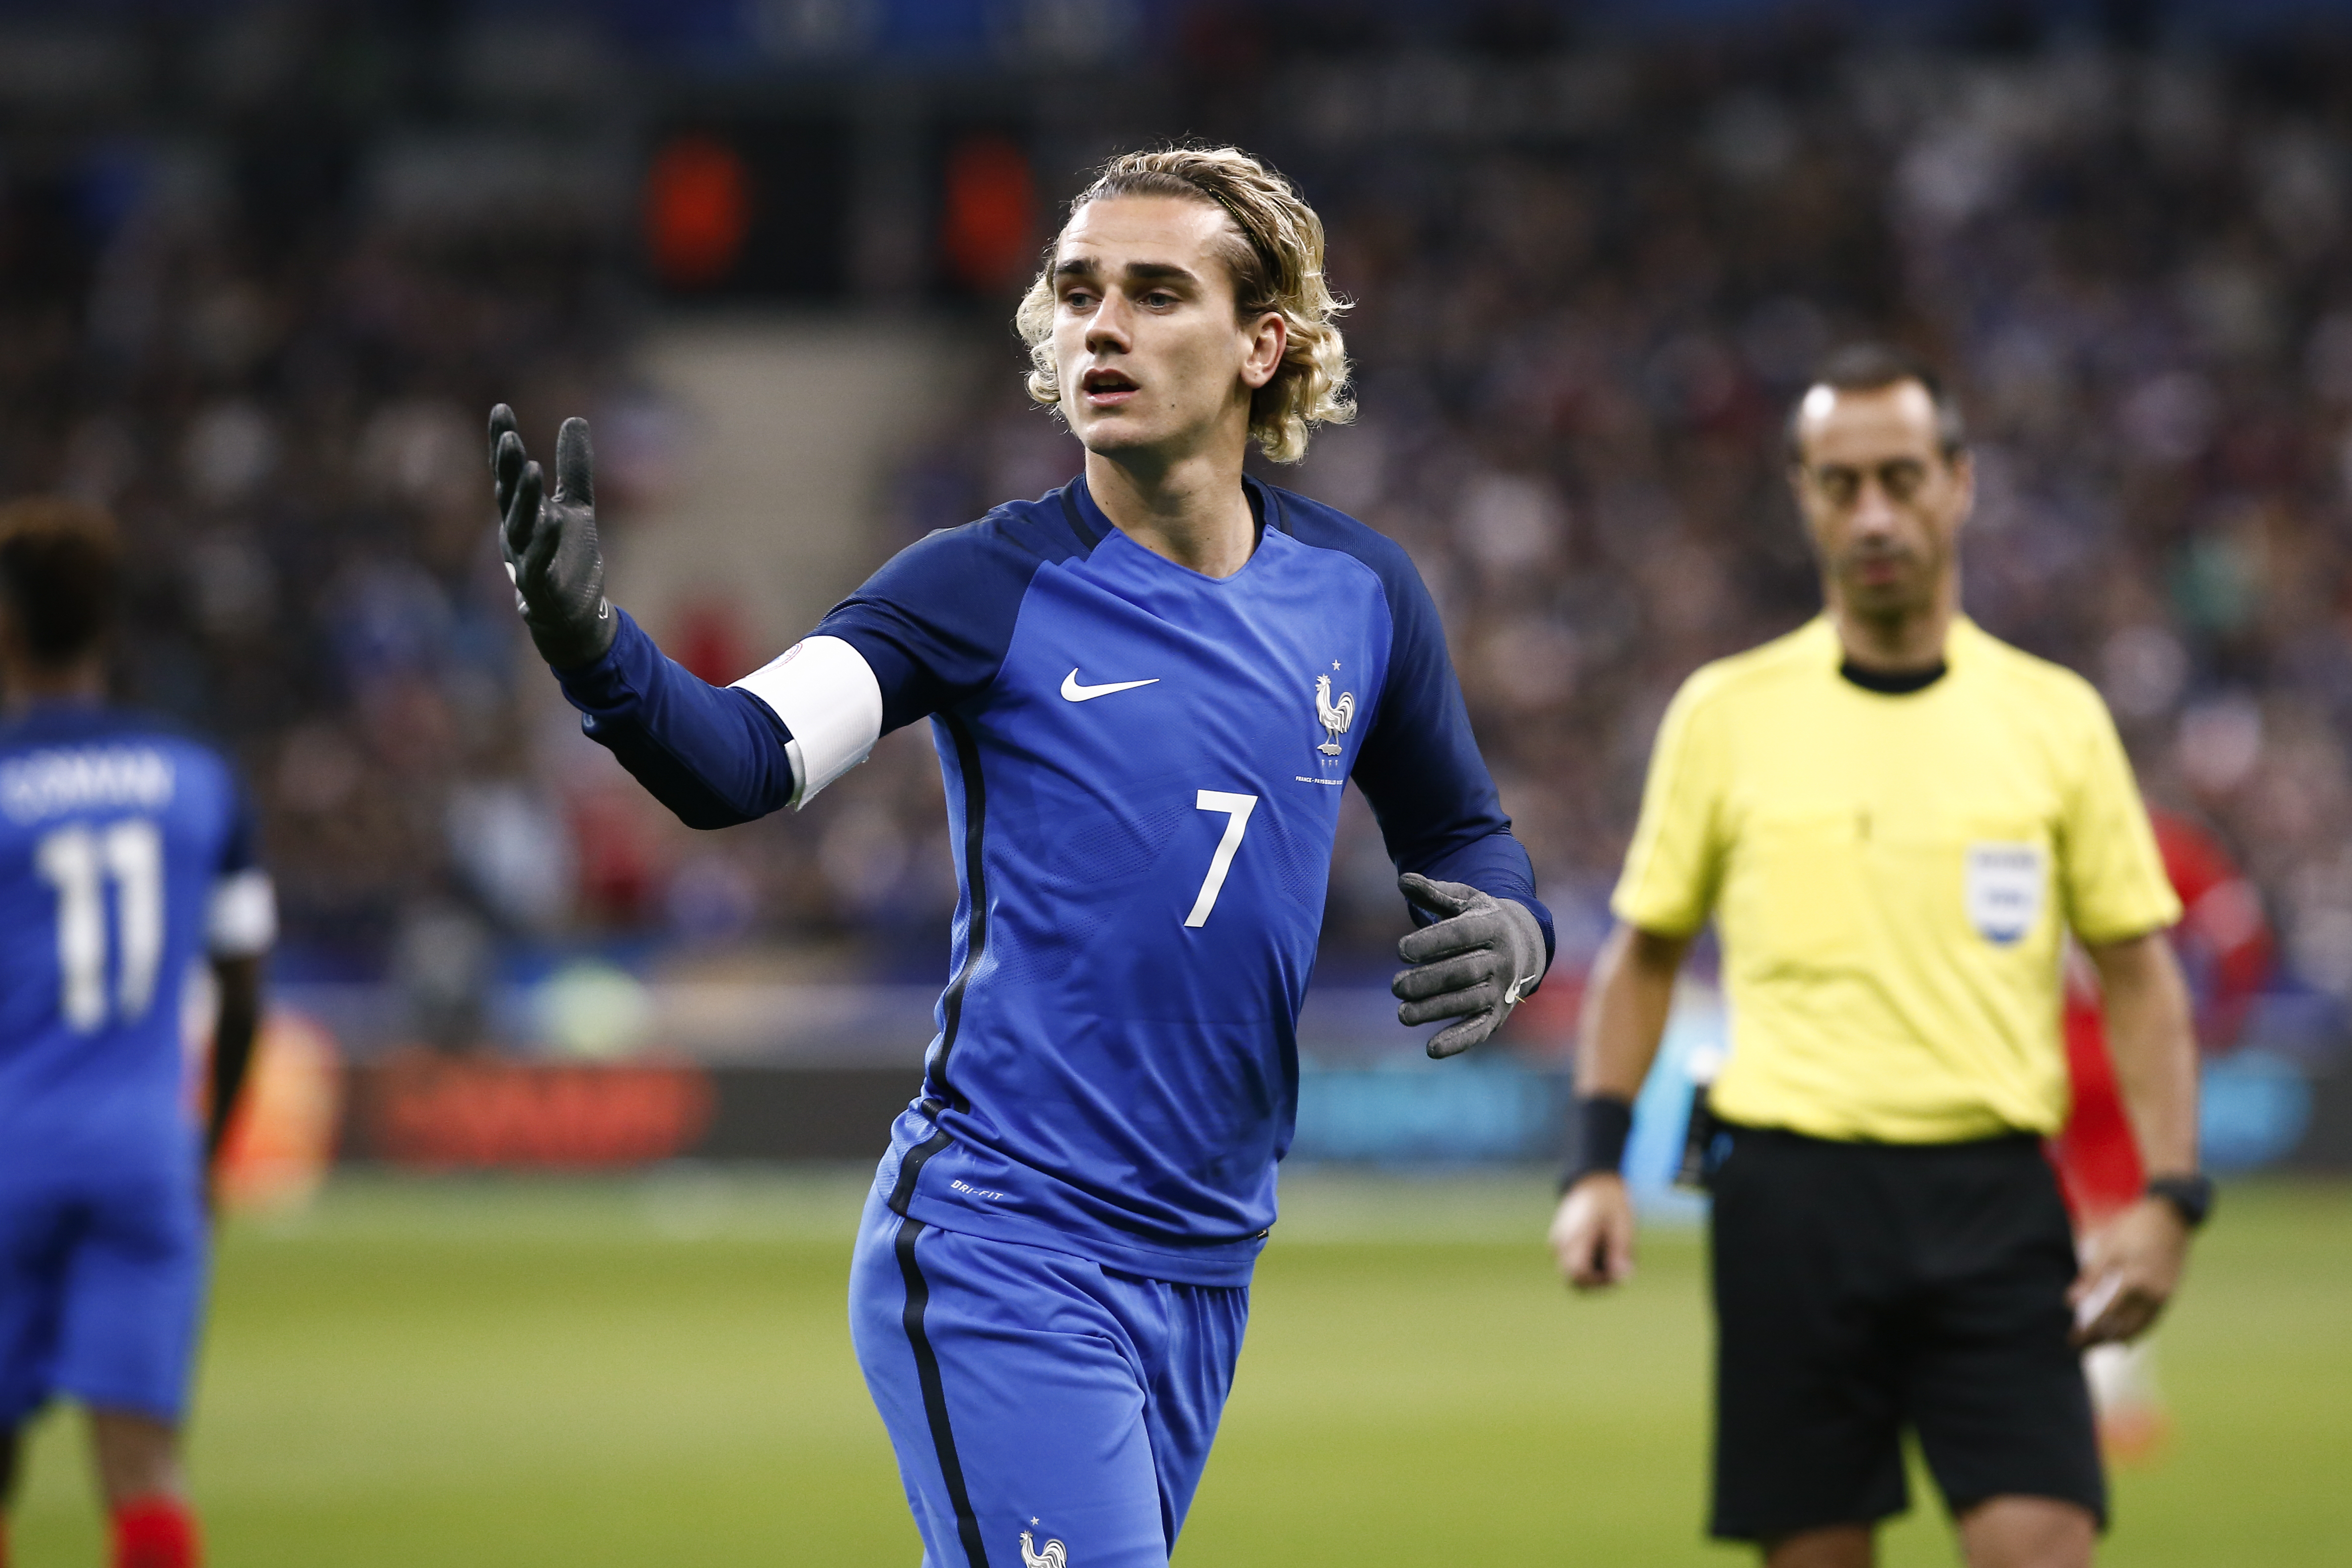 07/09/2021· antoine griezmann was at the double as france brushed aside finland to end a run of five games without victory and take control of group d in … Will Antoine Griezmann make a move to Barcelona?